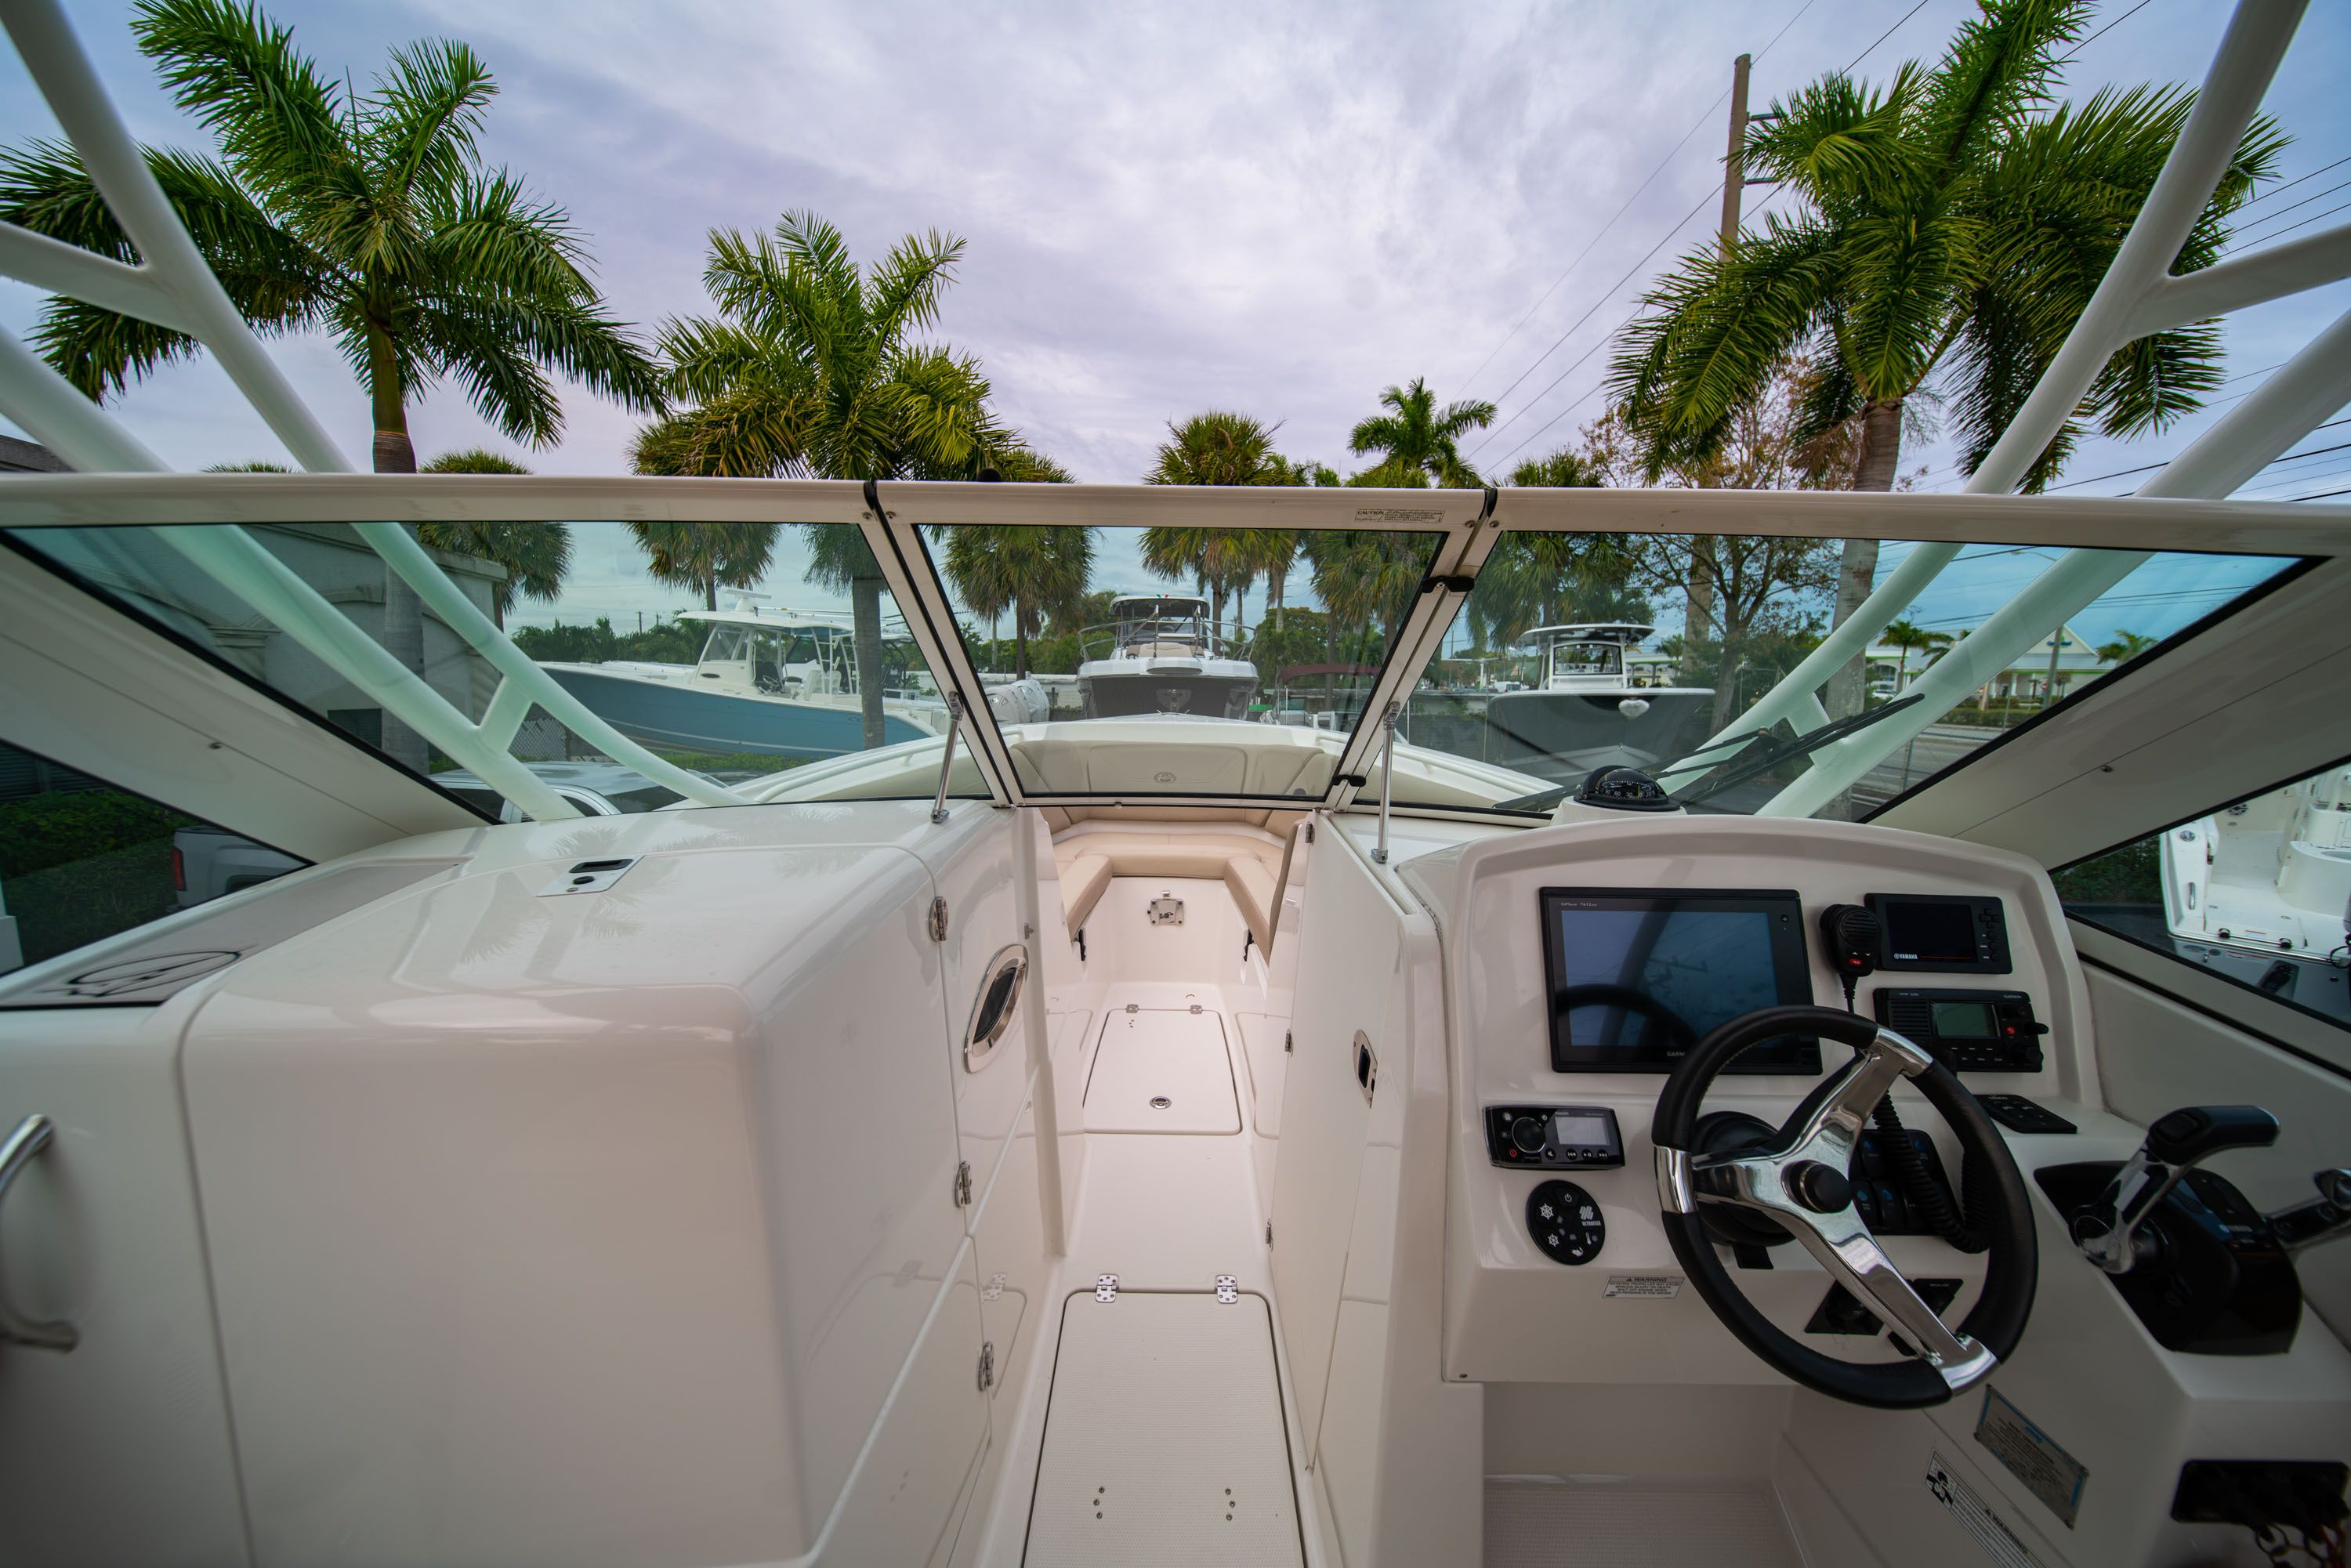 Thumbnail 43 for Used 2017 Sailfish 275 Dual Console boat for sale in West Palm Beach, FL